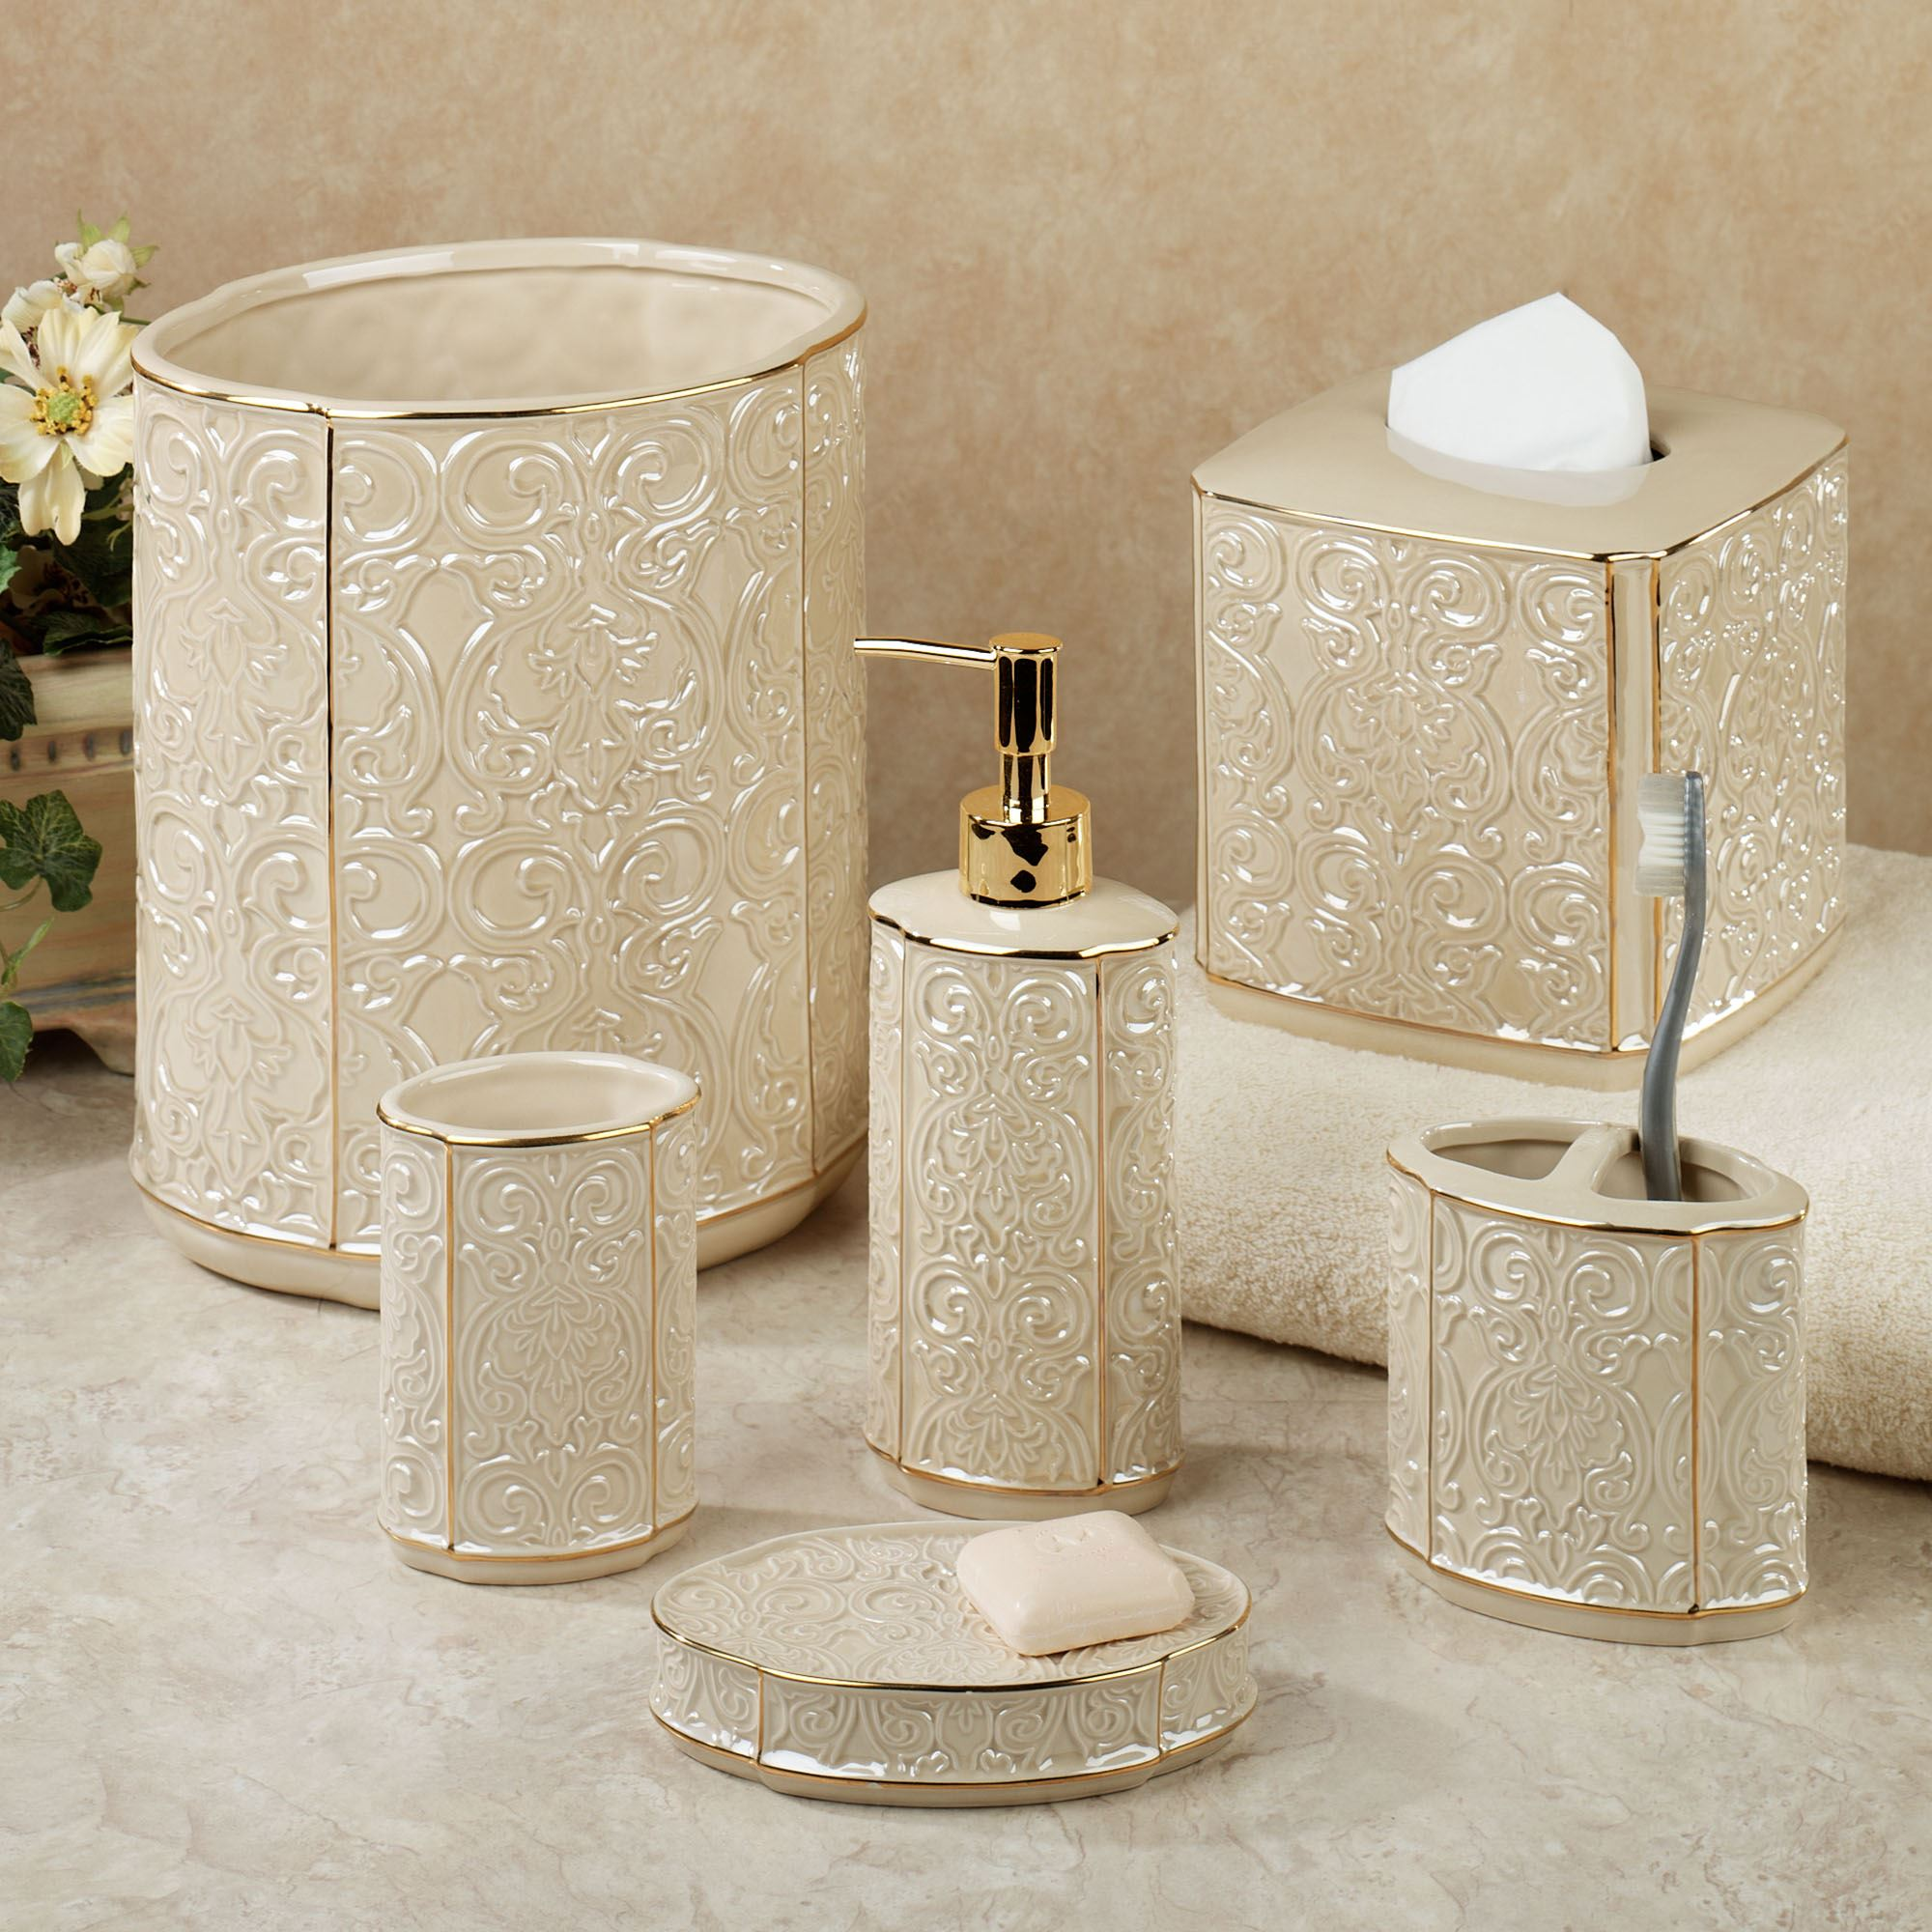 Furla cream damask ceramic bath accessories for Bathroom countertop accessories sets